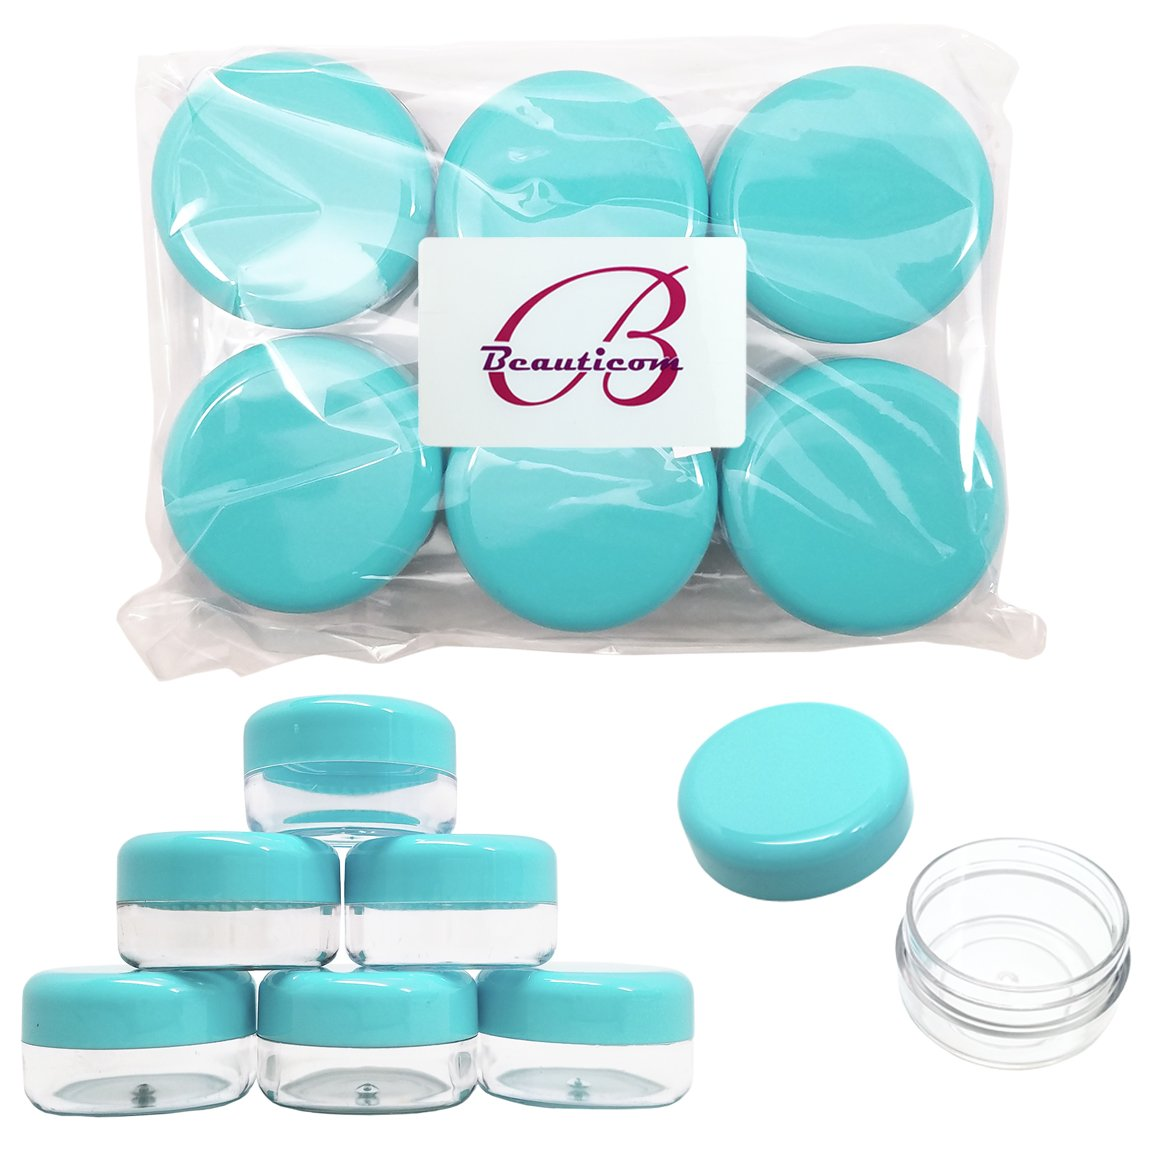 Beauticom Teal Color 15 gram/15ml/0.5oz. (Quantity: 900 Pieces) Empty Clear Round Travel Container Jars with Lids for Make Up Powders, Eyeshadow Pigments, Lotions, Creams, Lip Balm, Lip Gloss, Samples